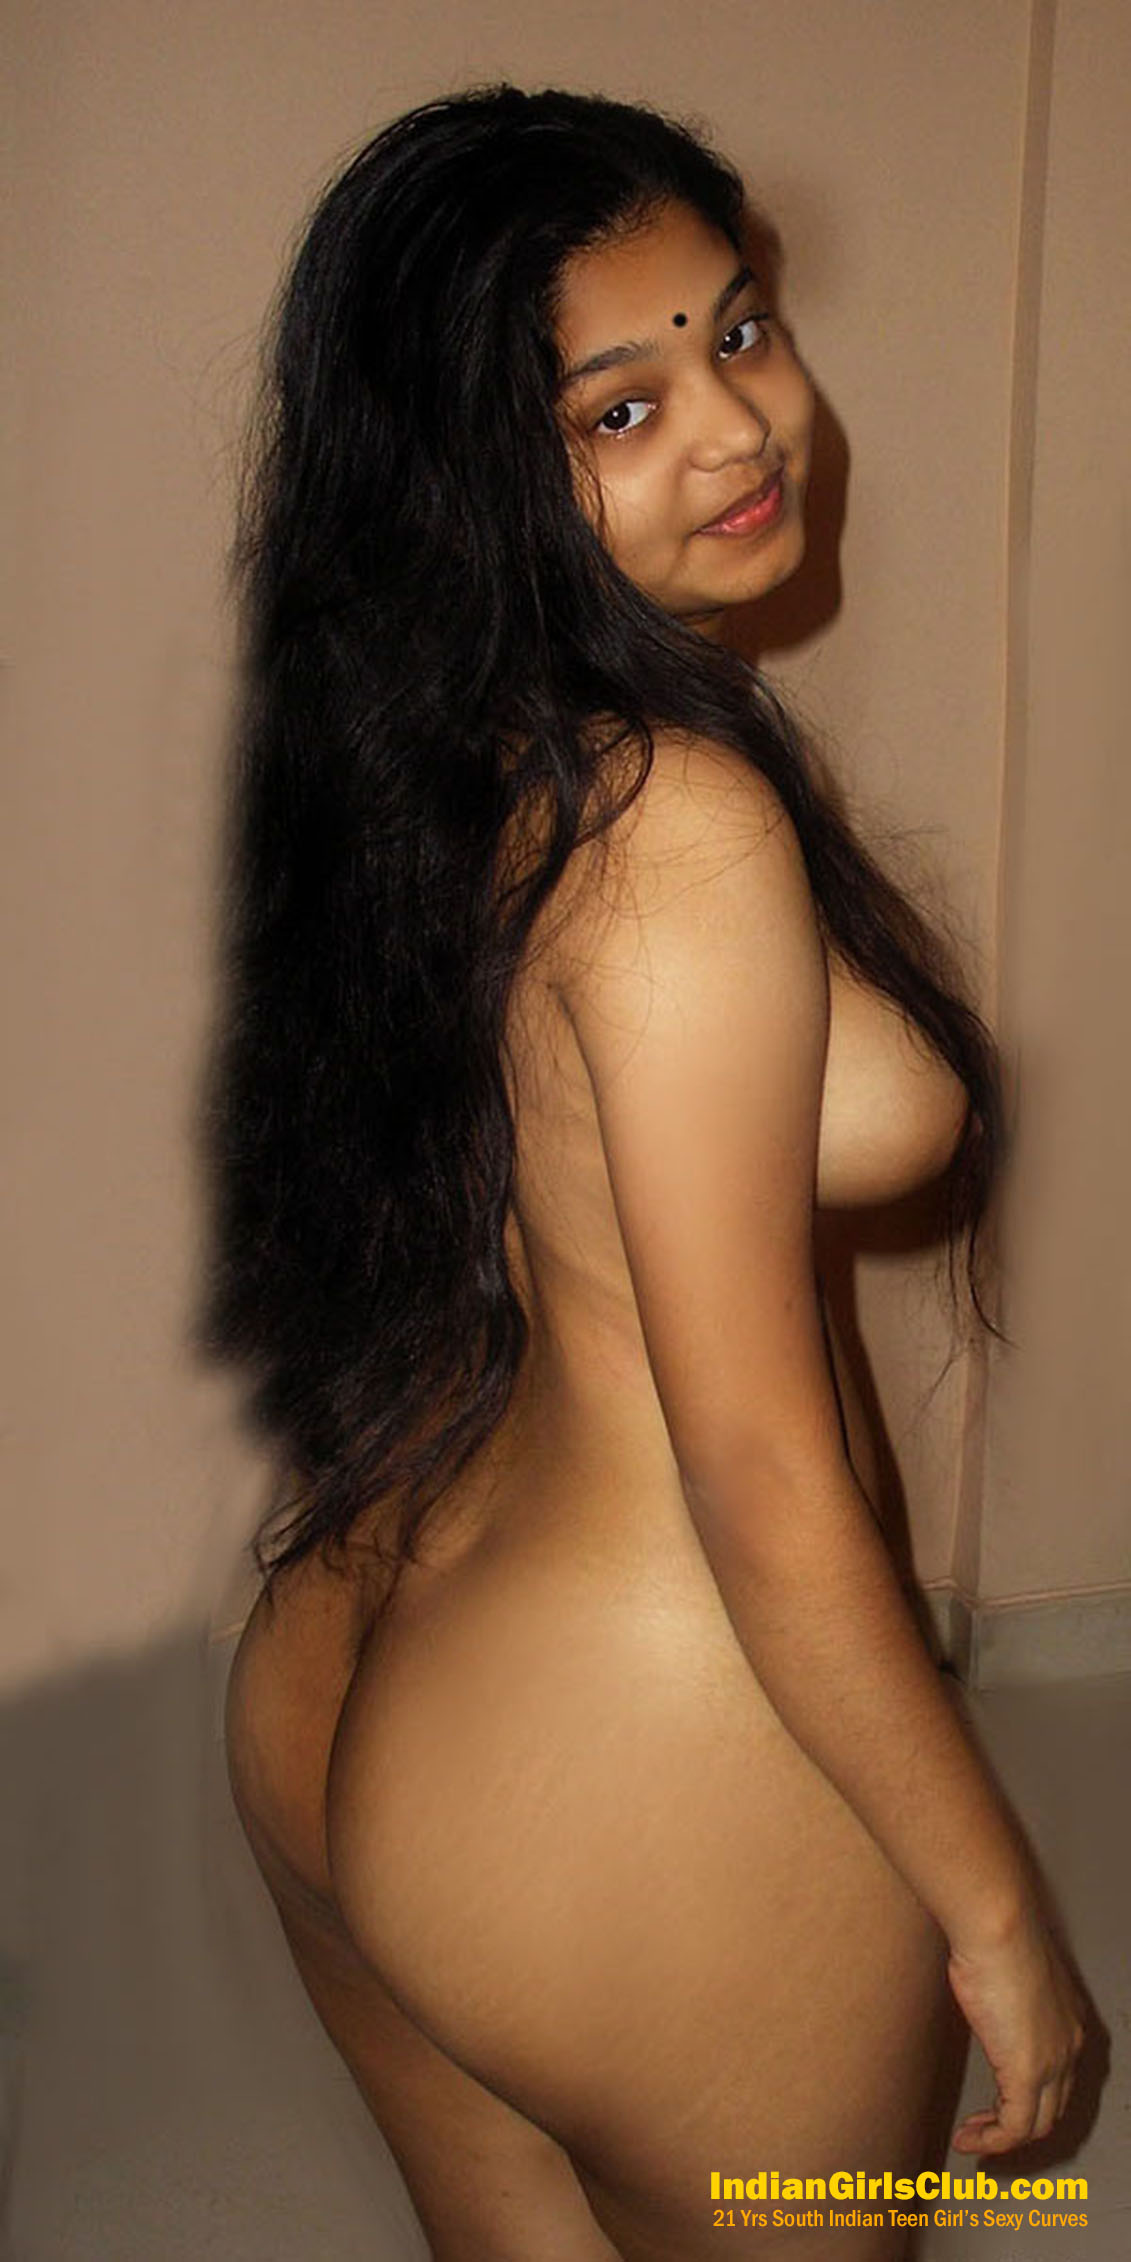 from souuth indianp Nude girls